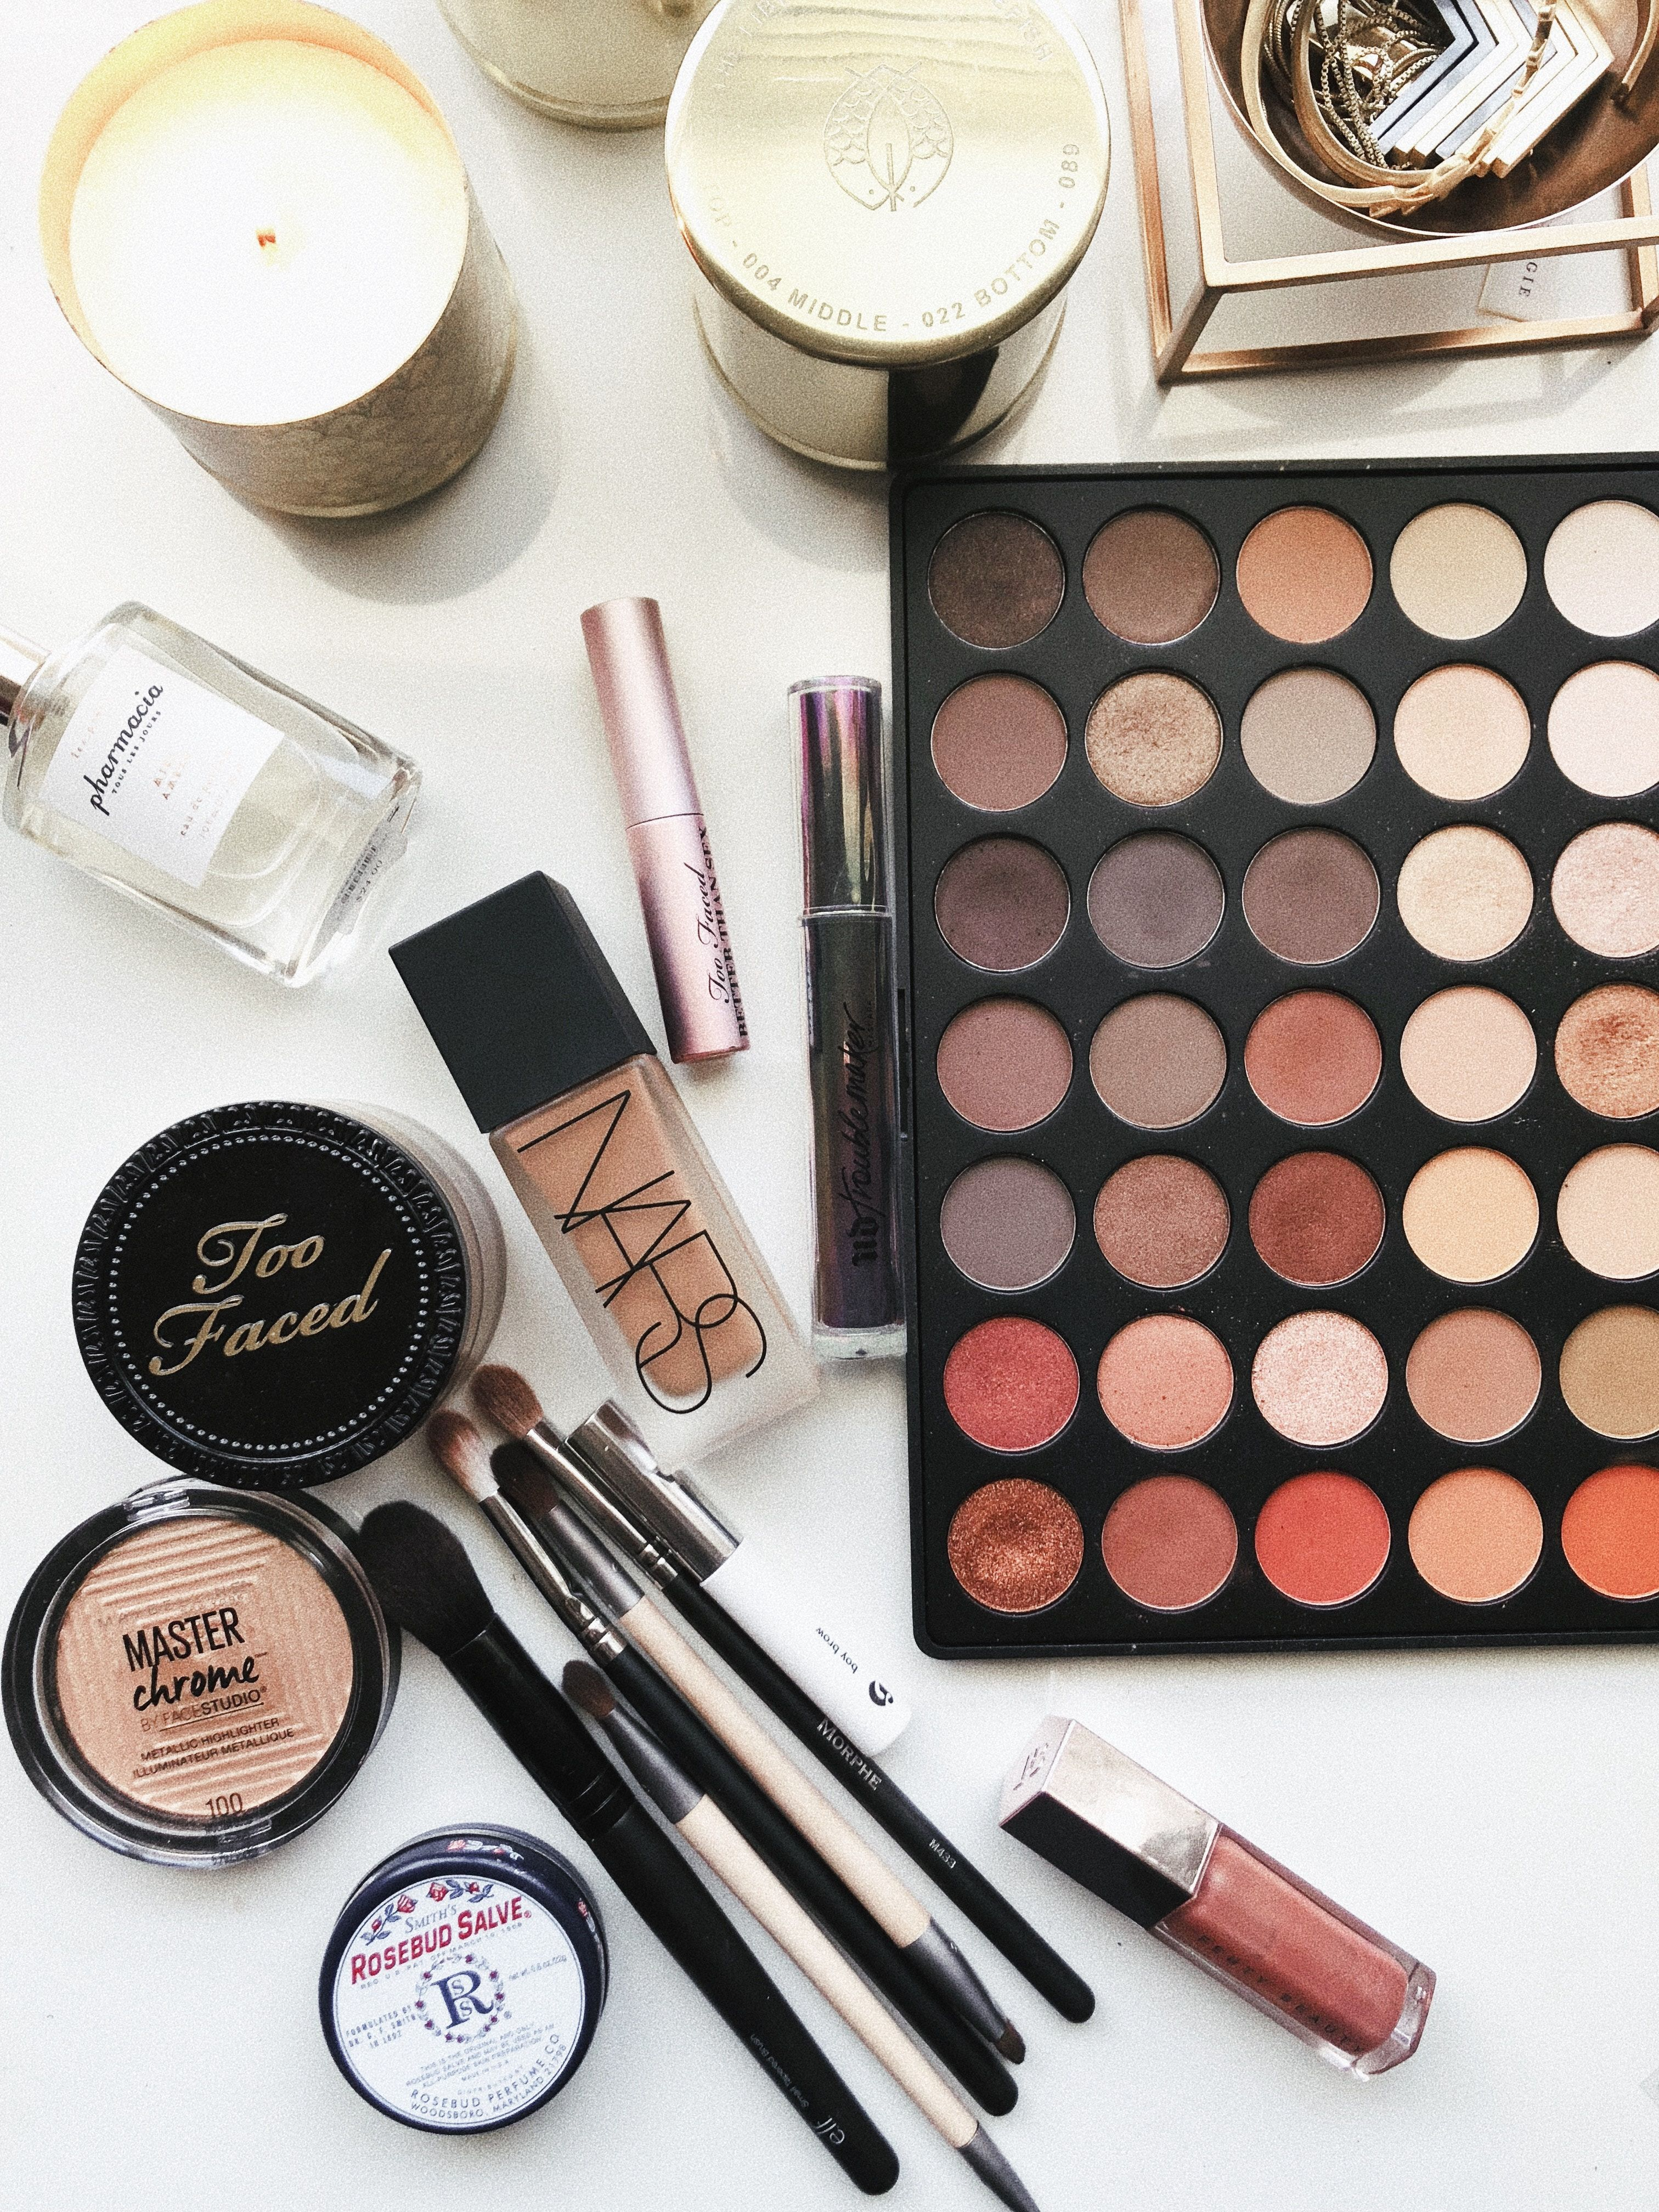 Splurge Or Save Makeup Products